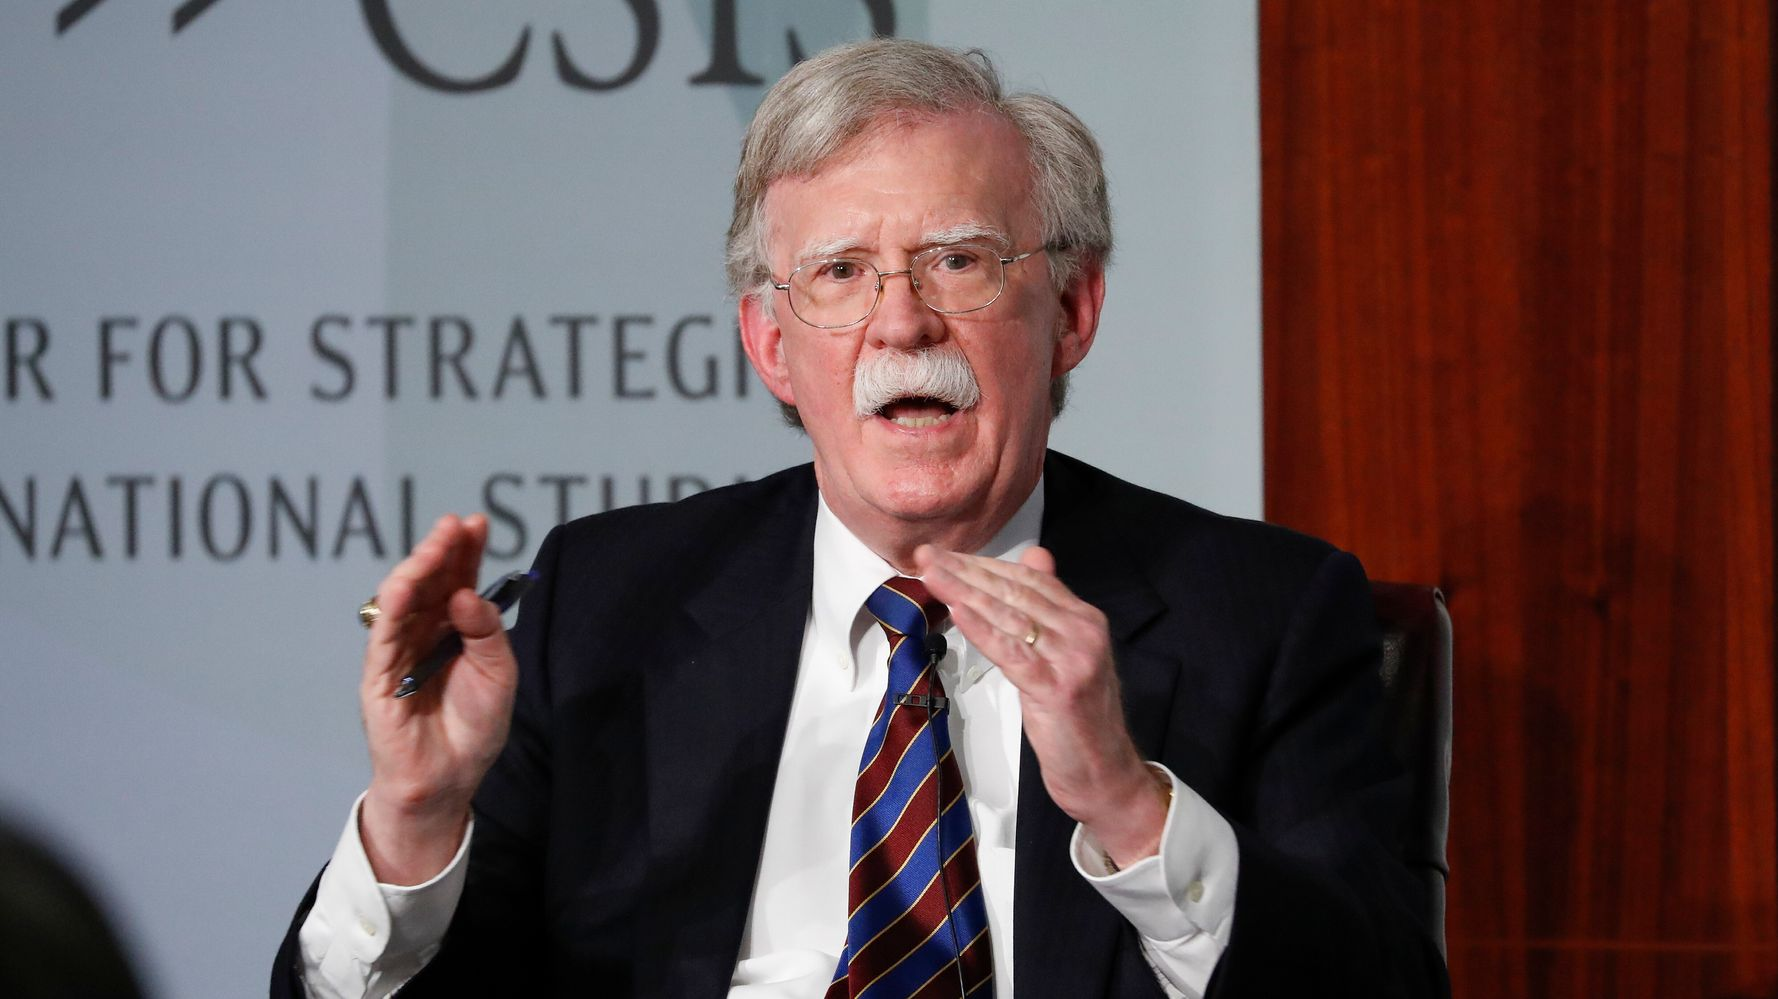 Westlake Legal Group 5e1368d22400009f245a5115 John Bolton Says He'd Testify In Trump's Impeachment Trial If Subpoenaed